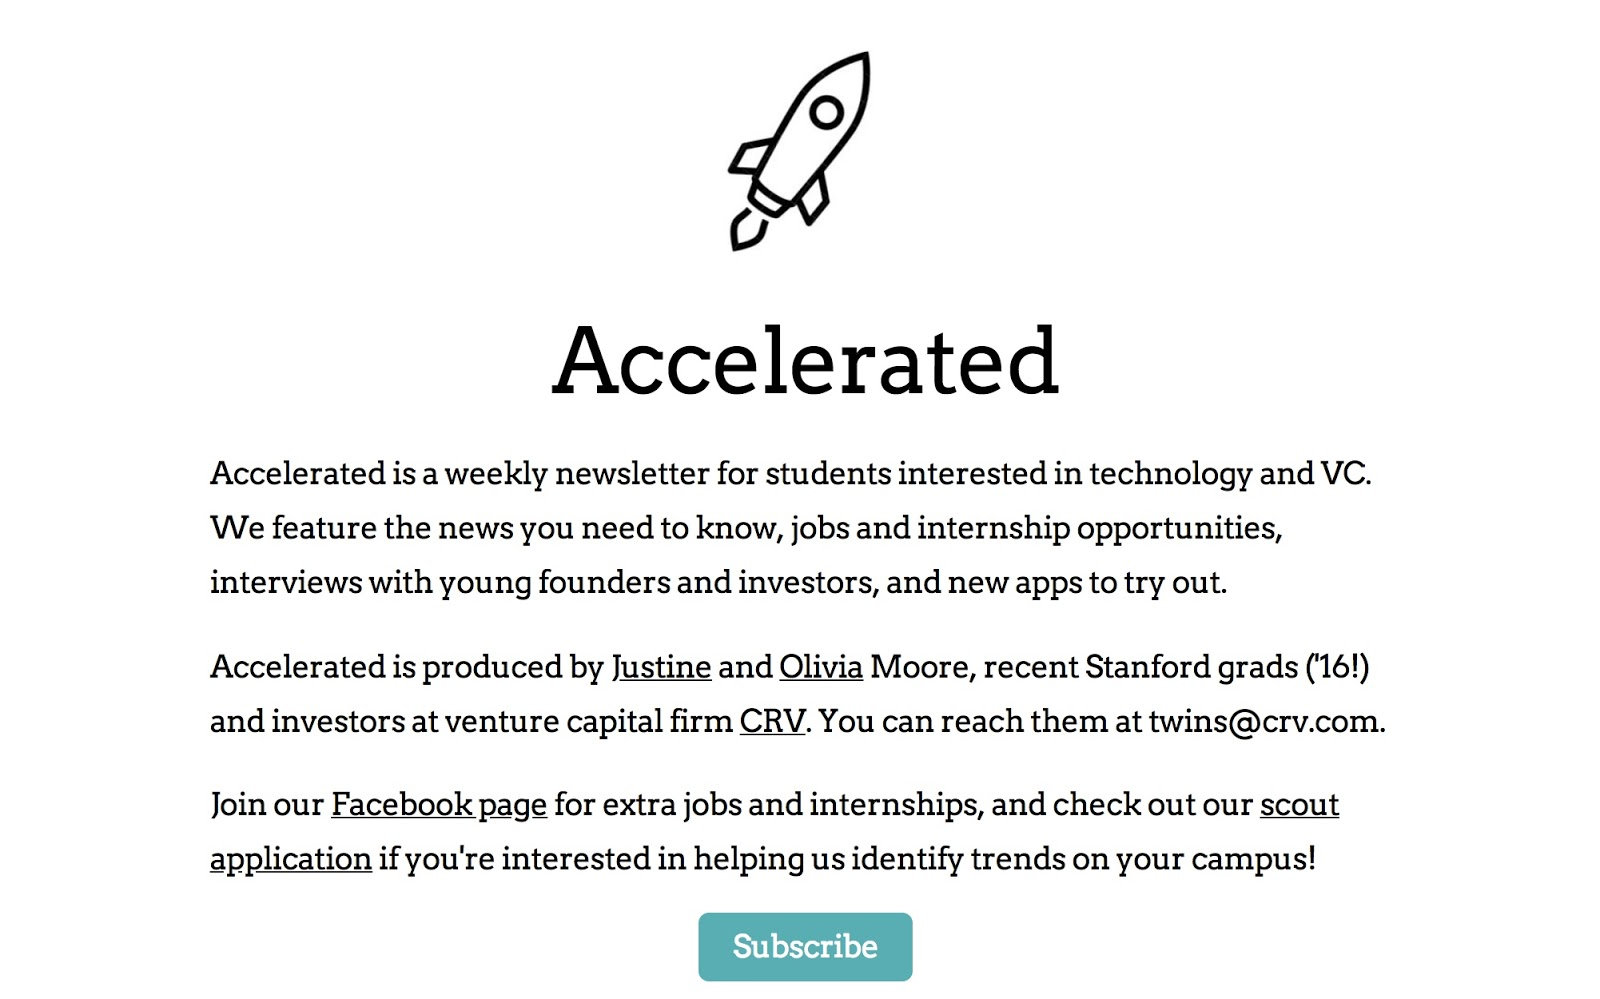 Accelerated Newsletter